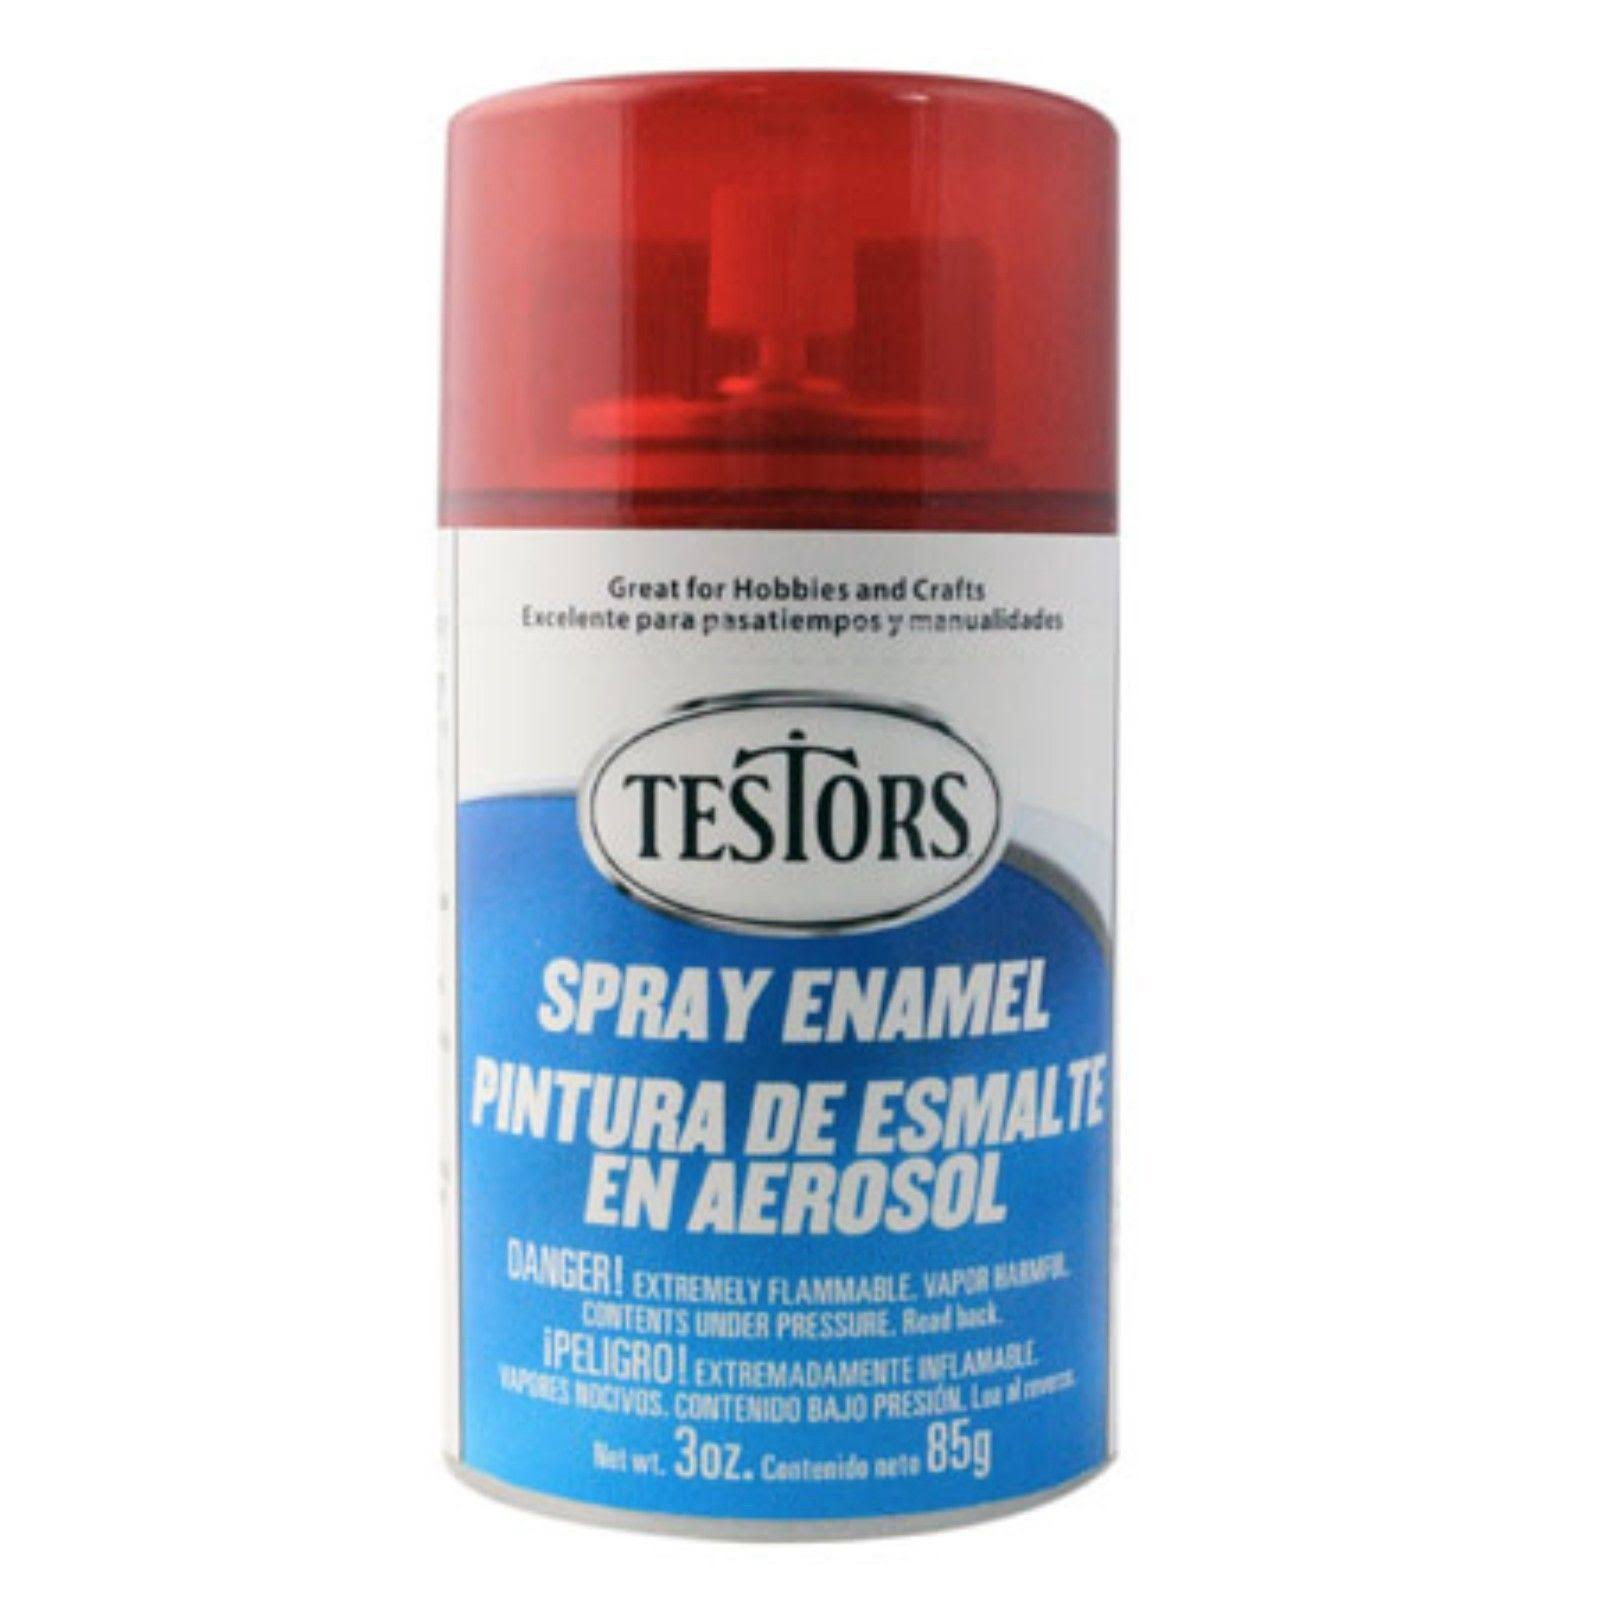 Testors Spray Enamel 3oz - Gloss Candy Red